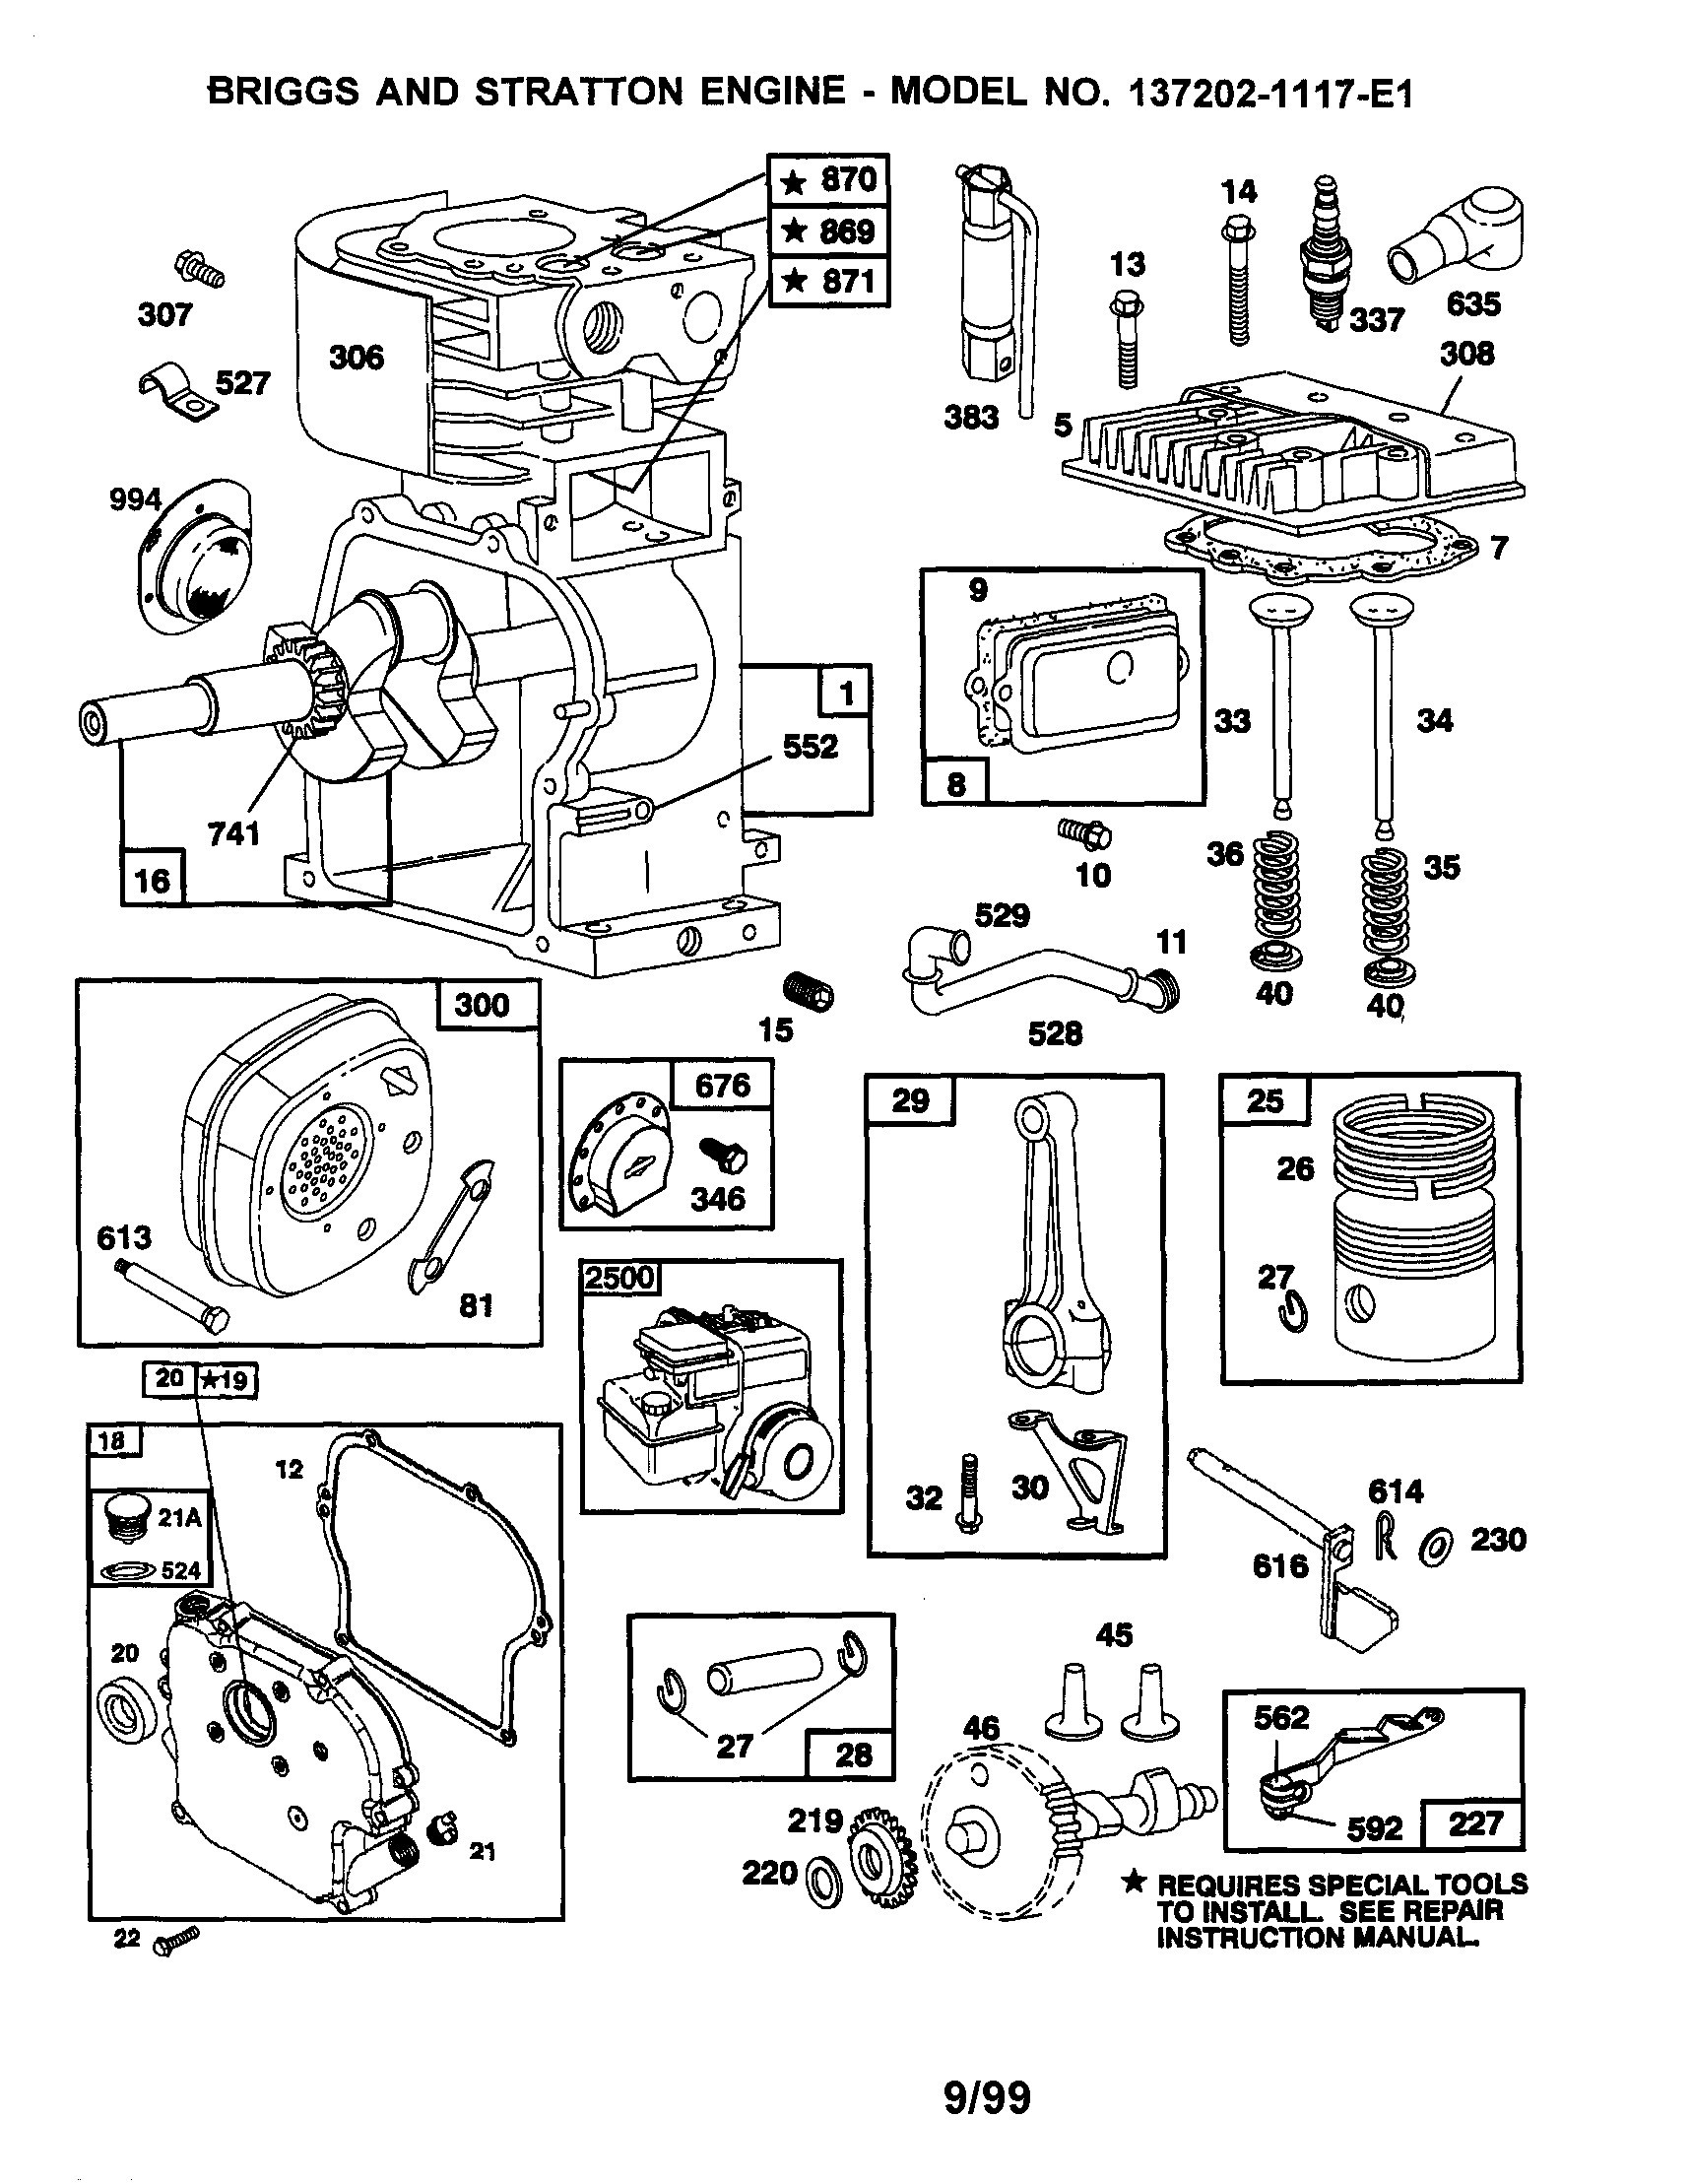 19.5 Horse Briggs Wiring Diagram Diagram] 10 Hp Briggs and Stratton Fuel Pump Diagram Wiring Of 19.5 Horse Briggs Wiring Diagram